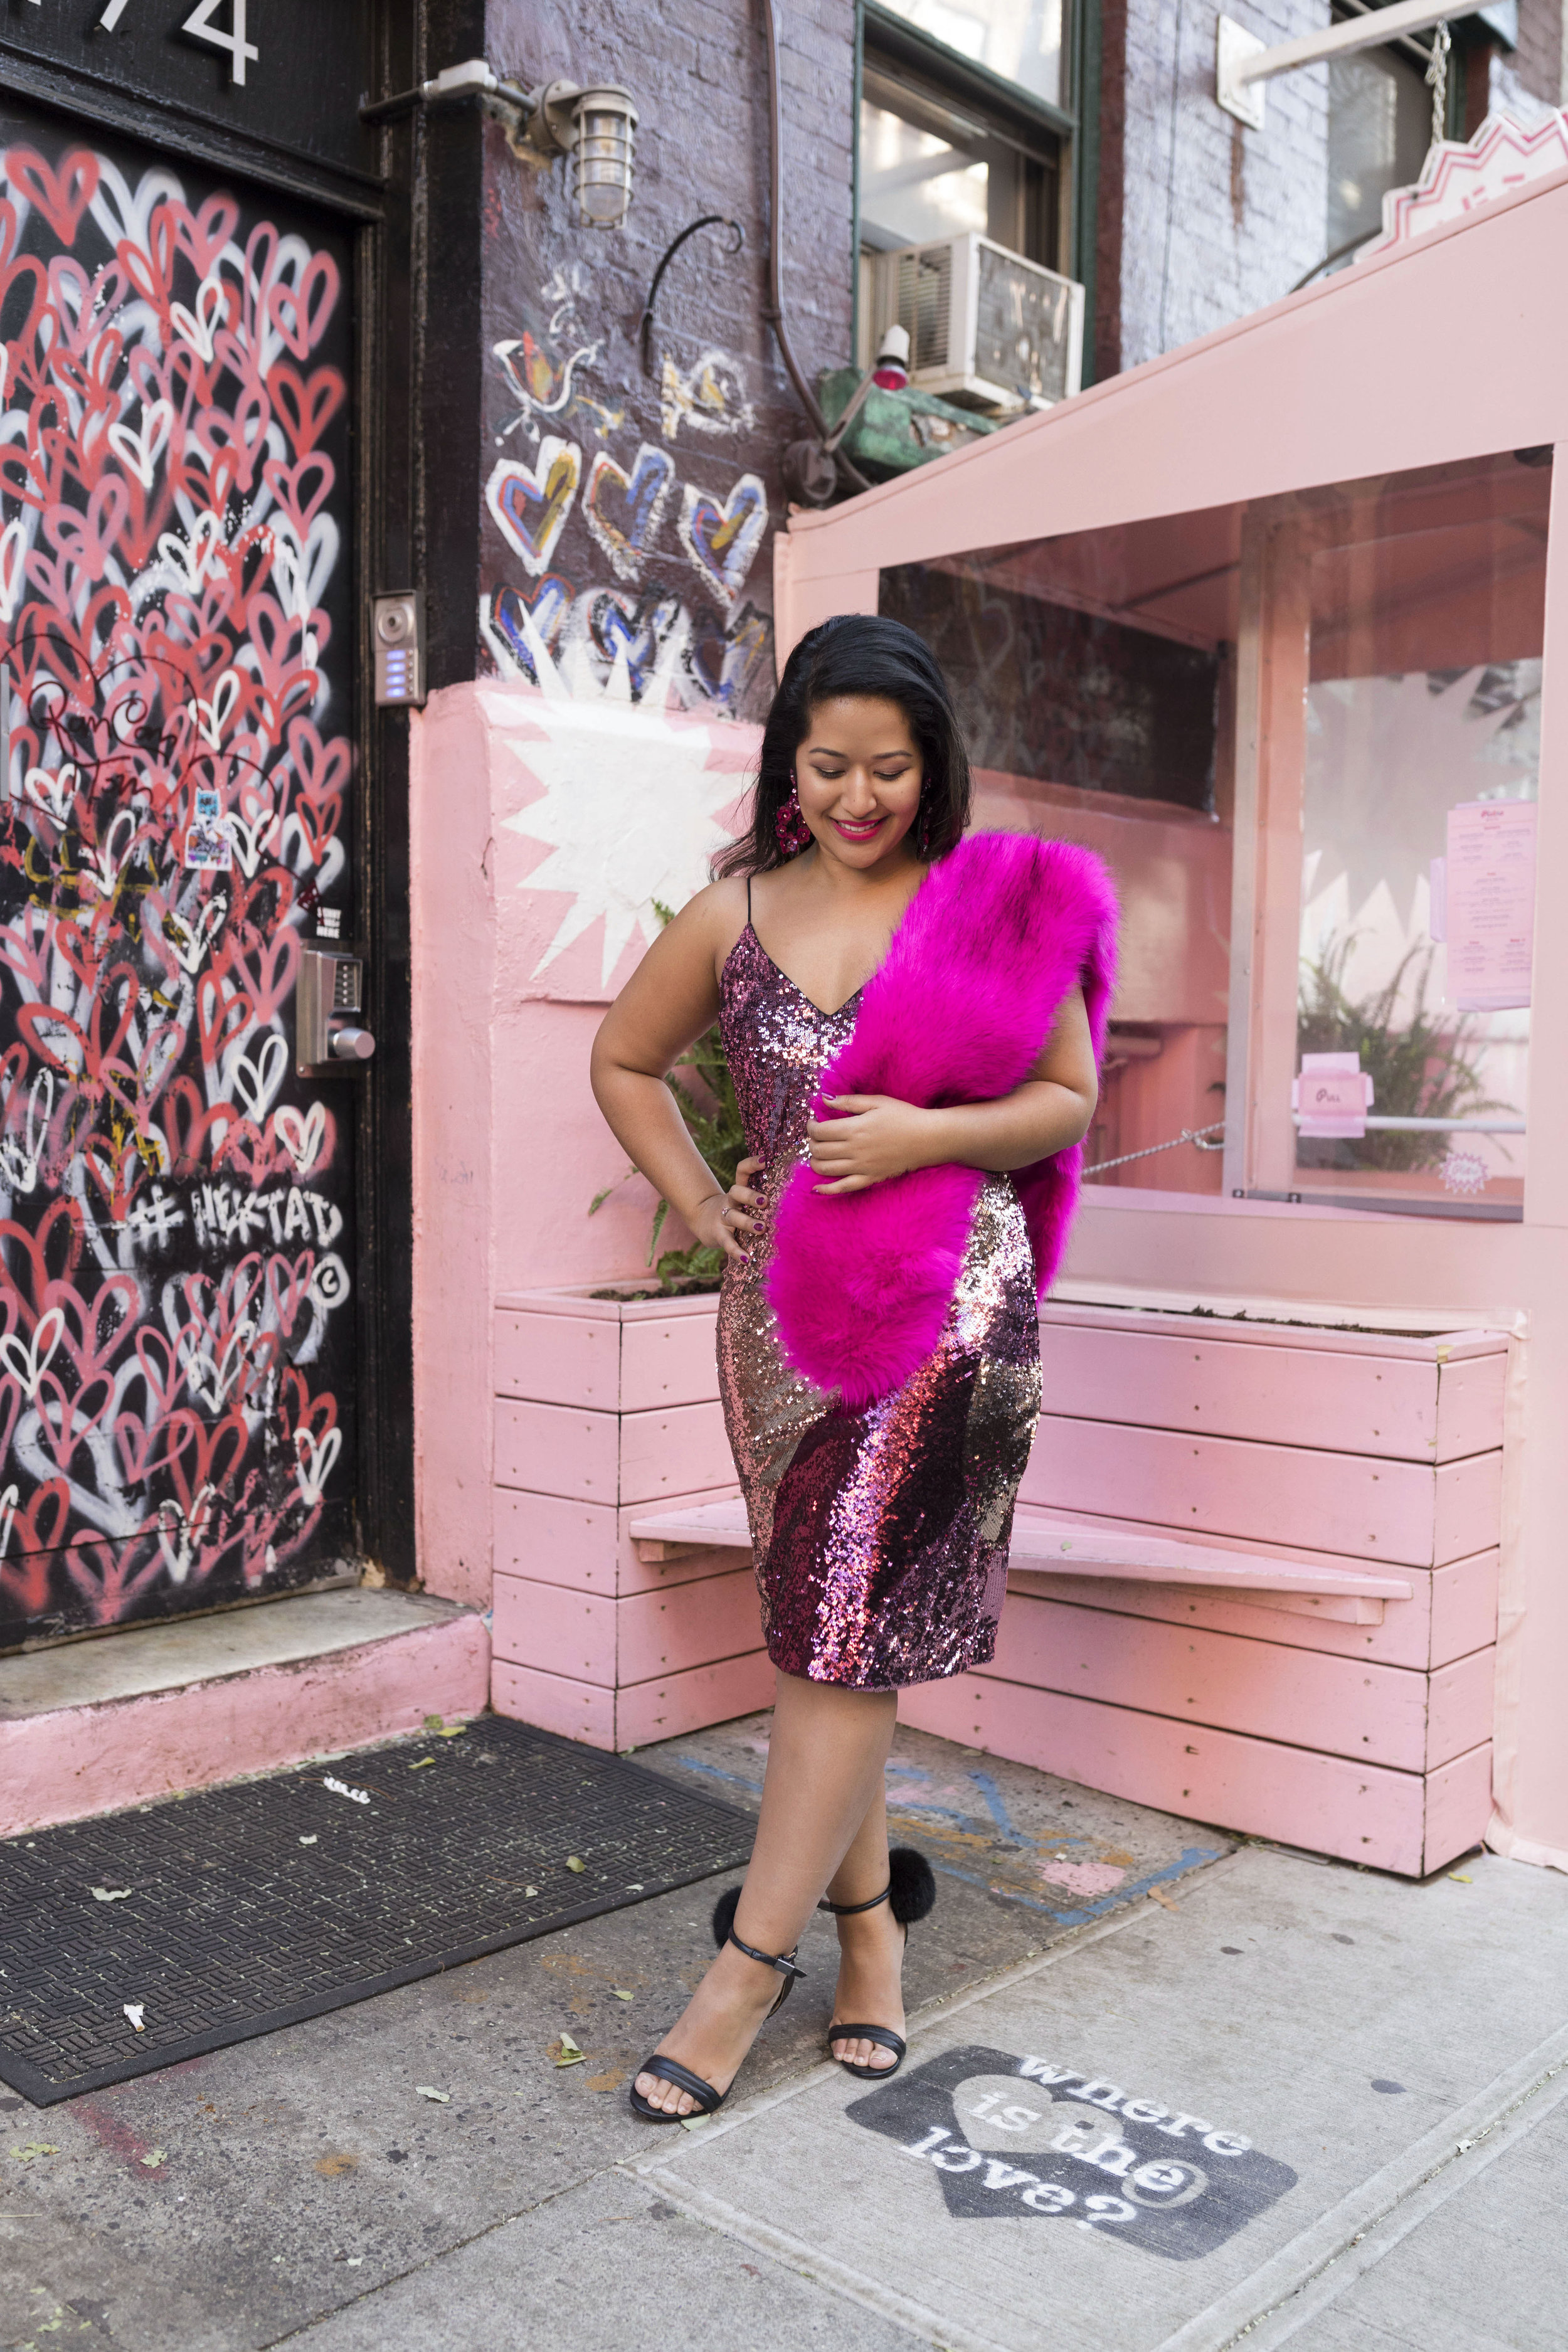 Krity S x New Years Eve Outfit x Aidan Mattox Color Block Pink Sequin Short Dress with Forever 21 Faux Fur Scarf 2.jpg